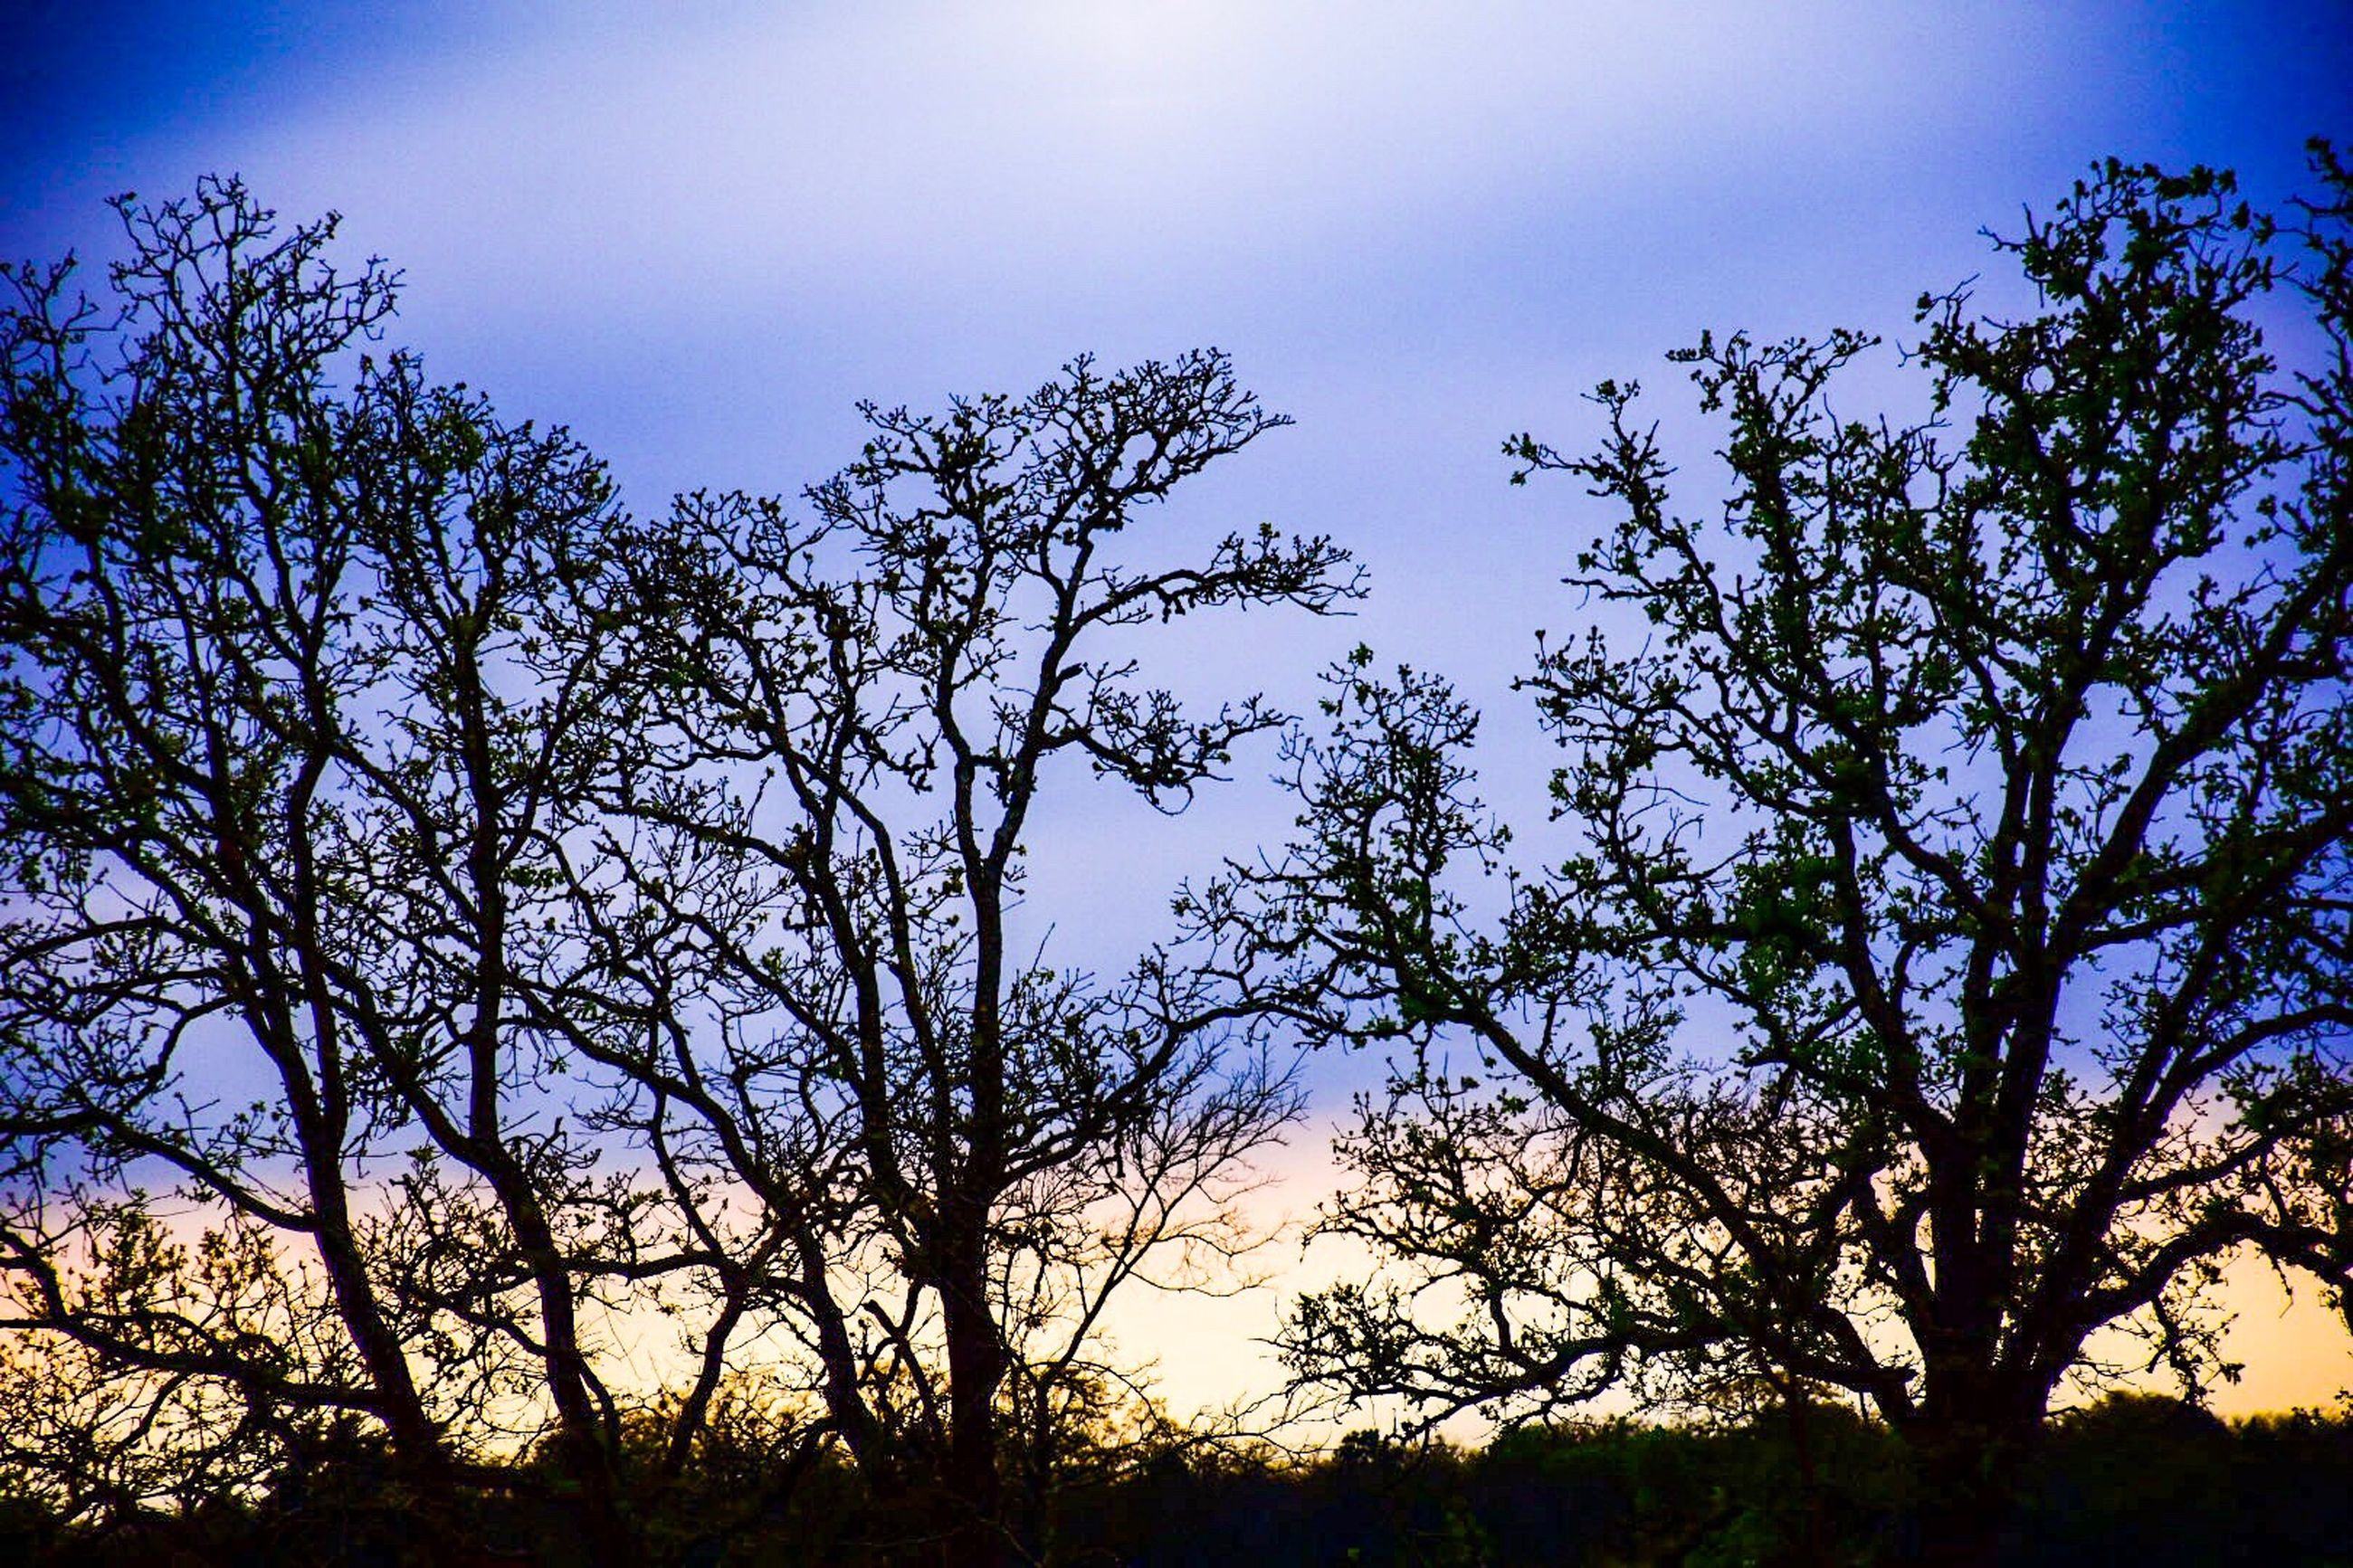 nature, sky, low angle view, growth, no people, tree, beauty in nature, silhouette, outdoors, tranquility, sunset, scenics, day